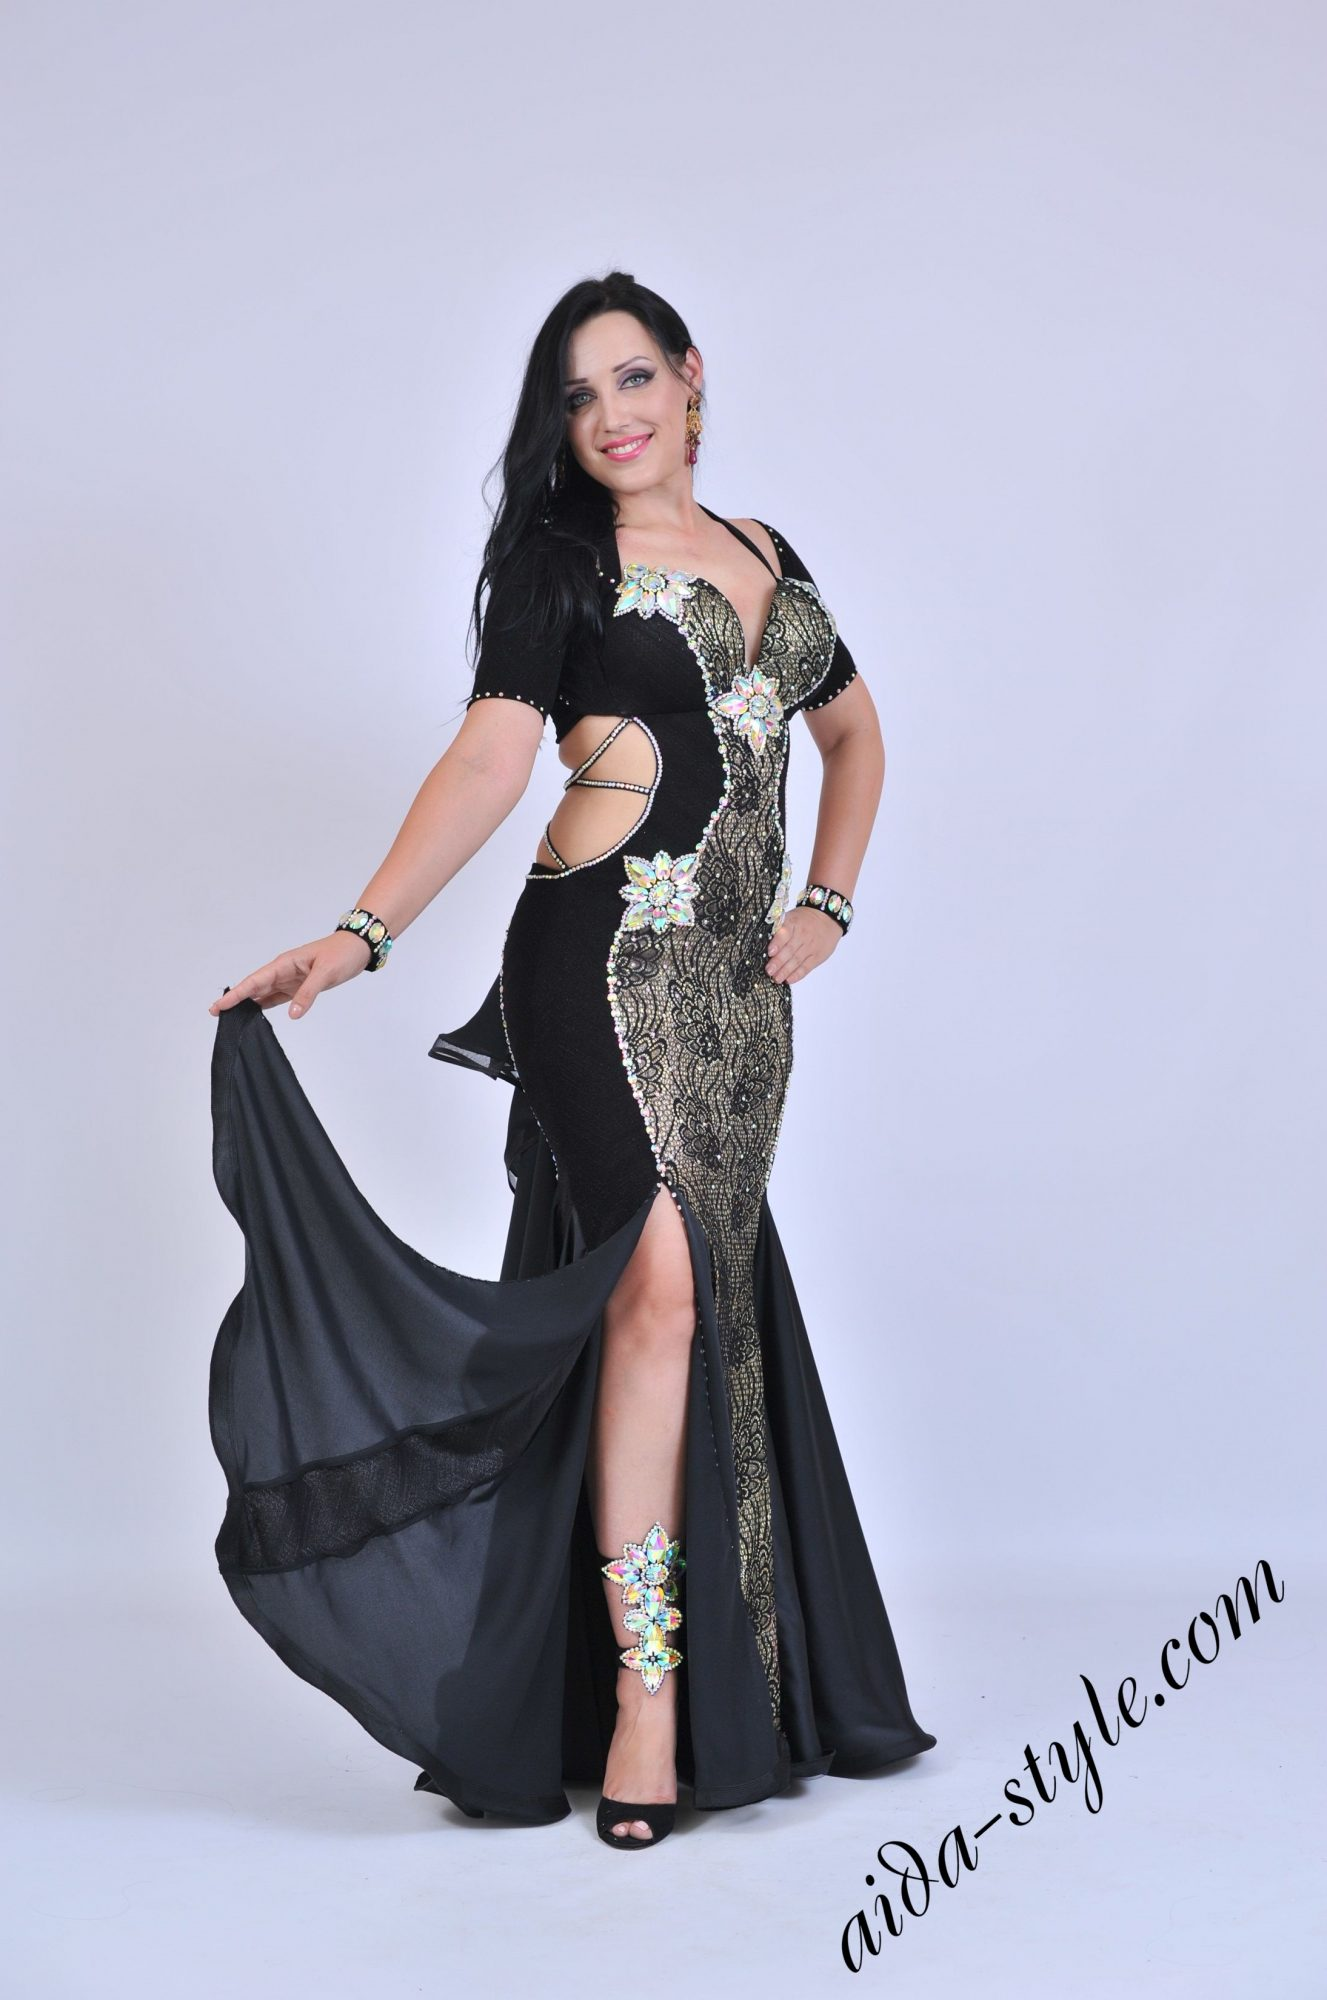 Black belly dance dress with covered belly and mermaid style skirt with opening